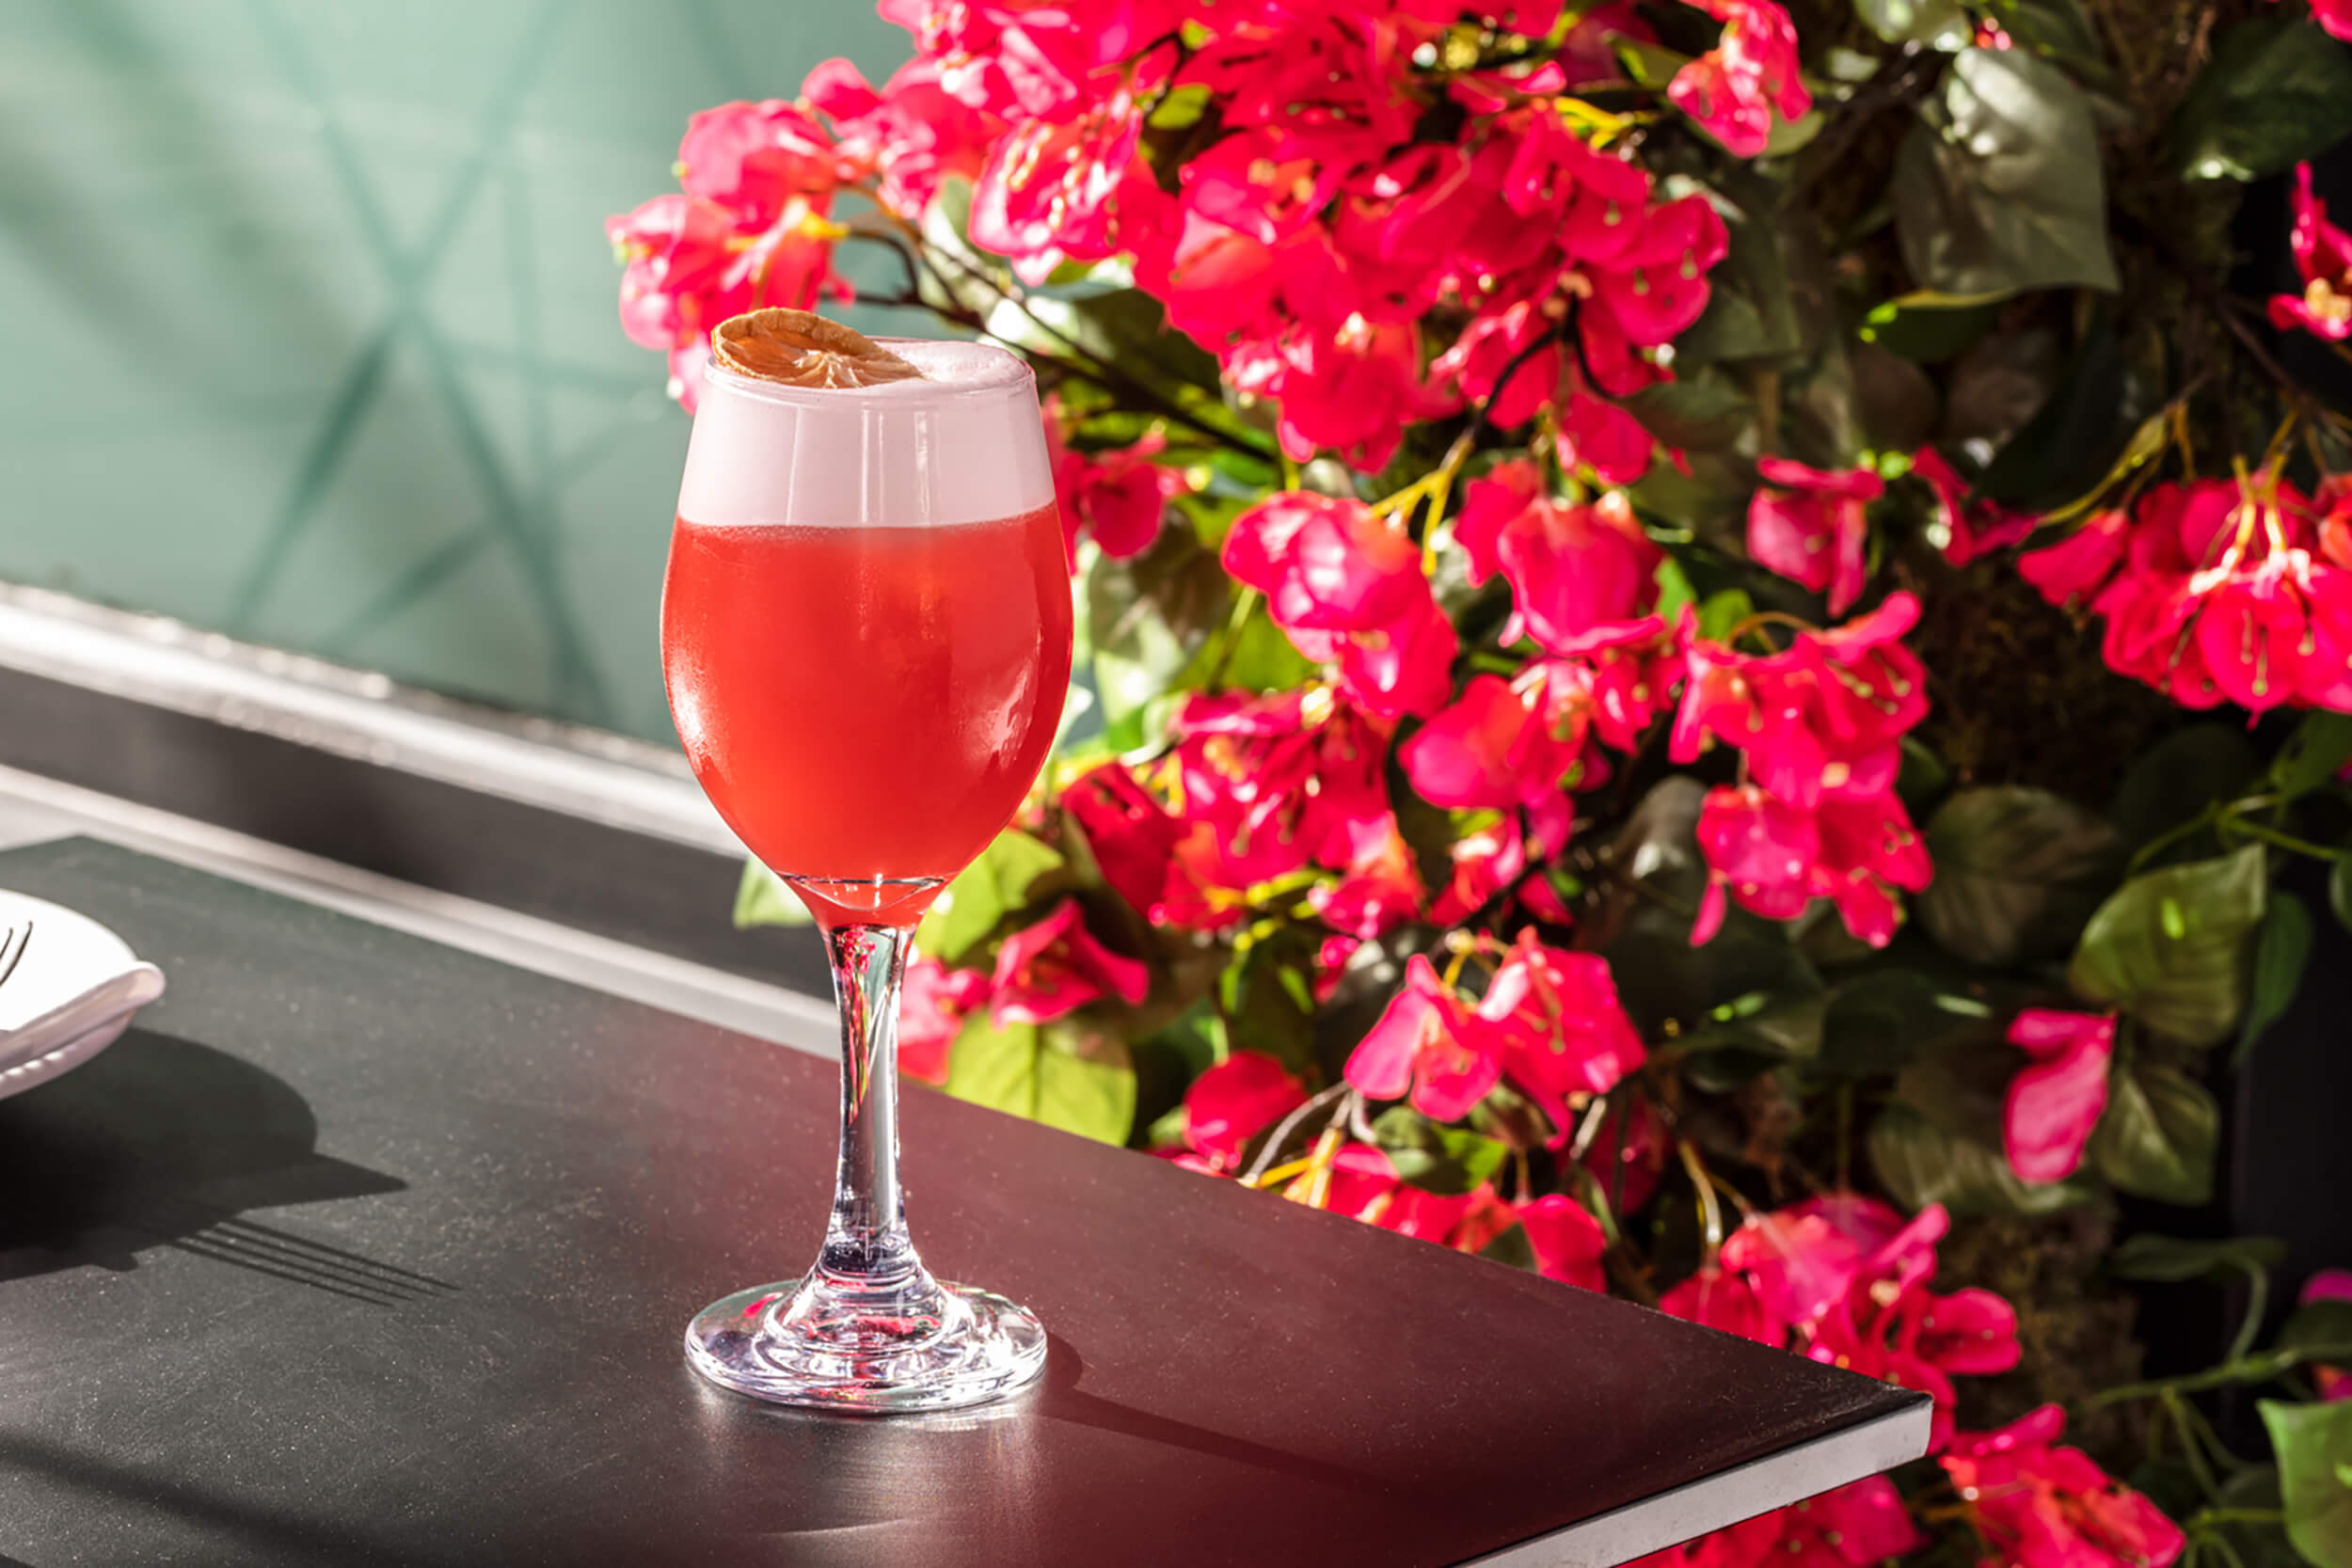 Pink cocktail in front of pink flowers.